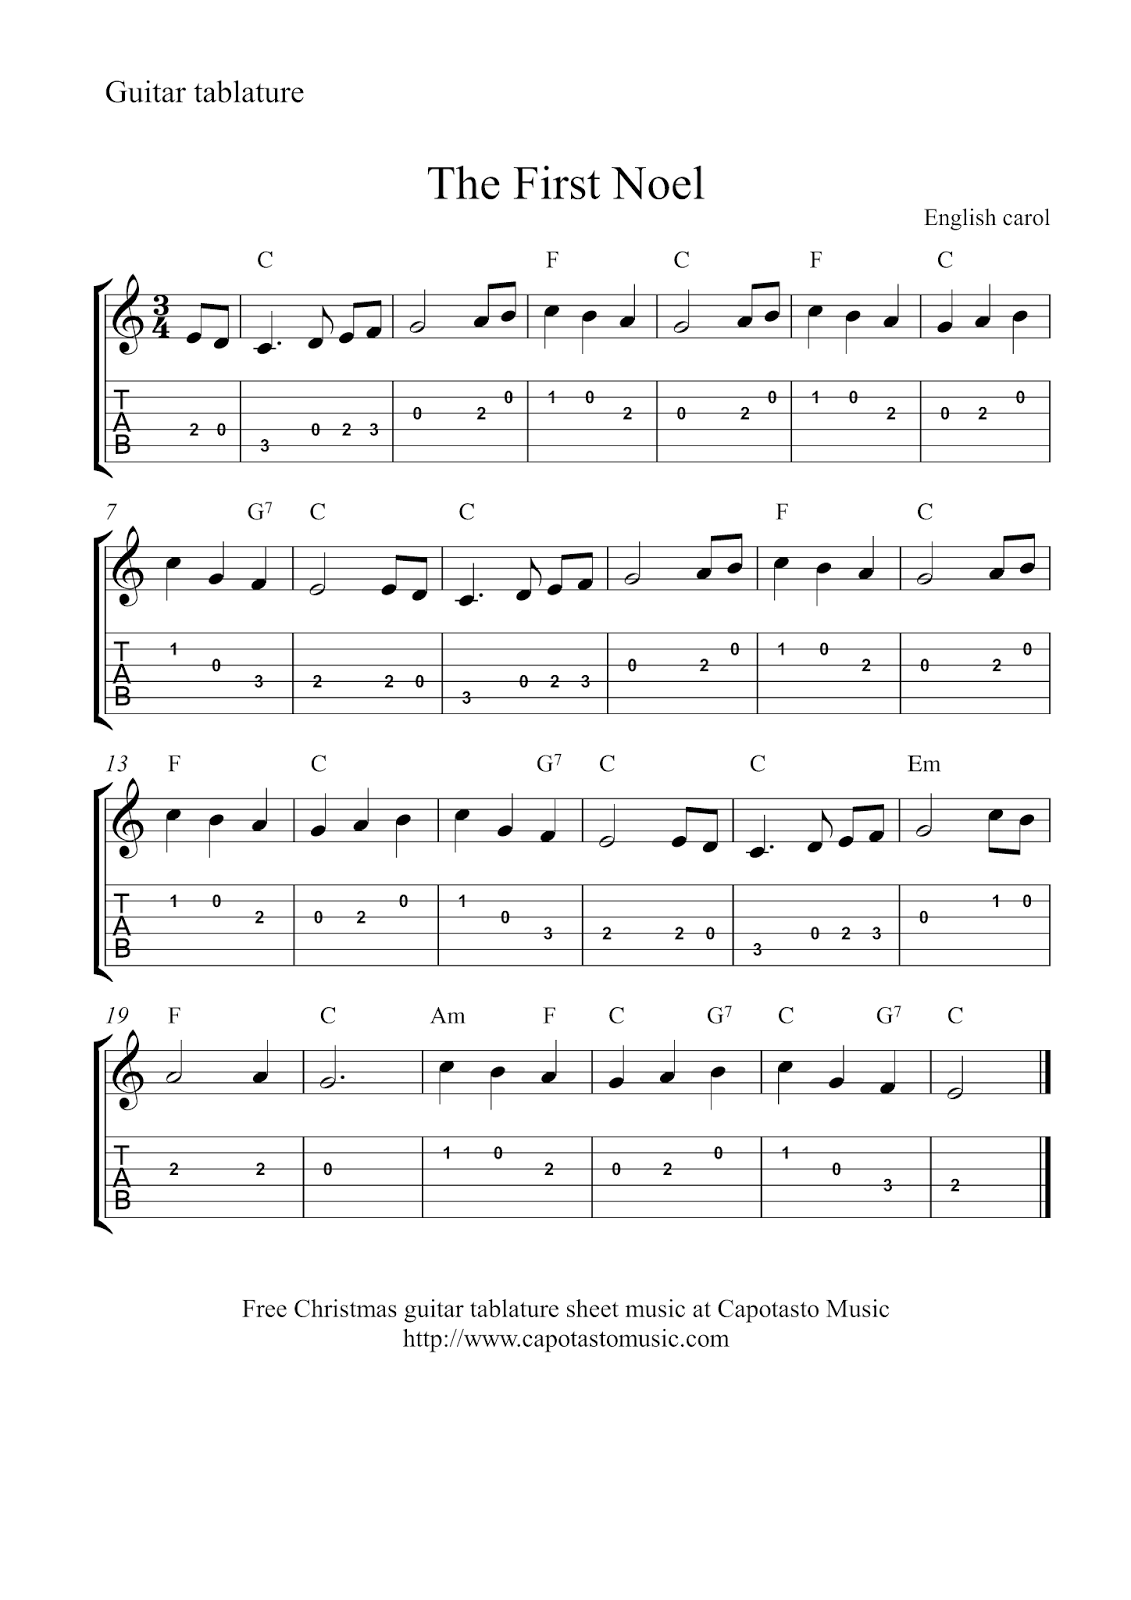 Free Sheet Music Scores Guitar Tab Christmas Guitar Tabs Songs Guitar Songs For Beginners Sheet Music